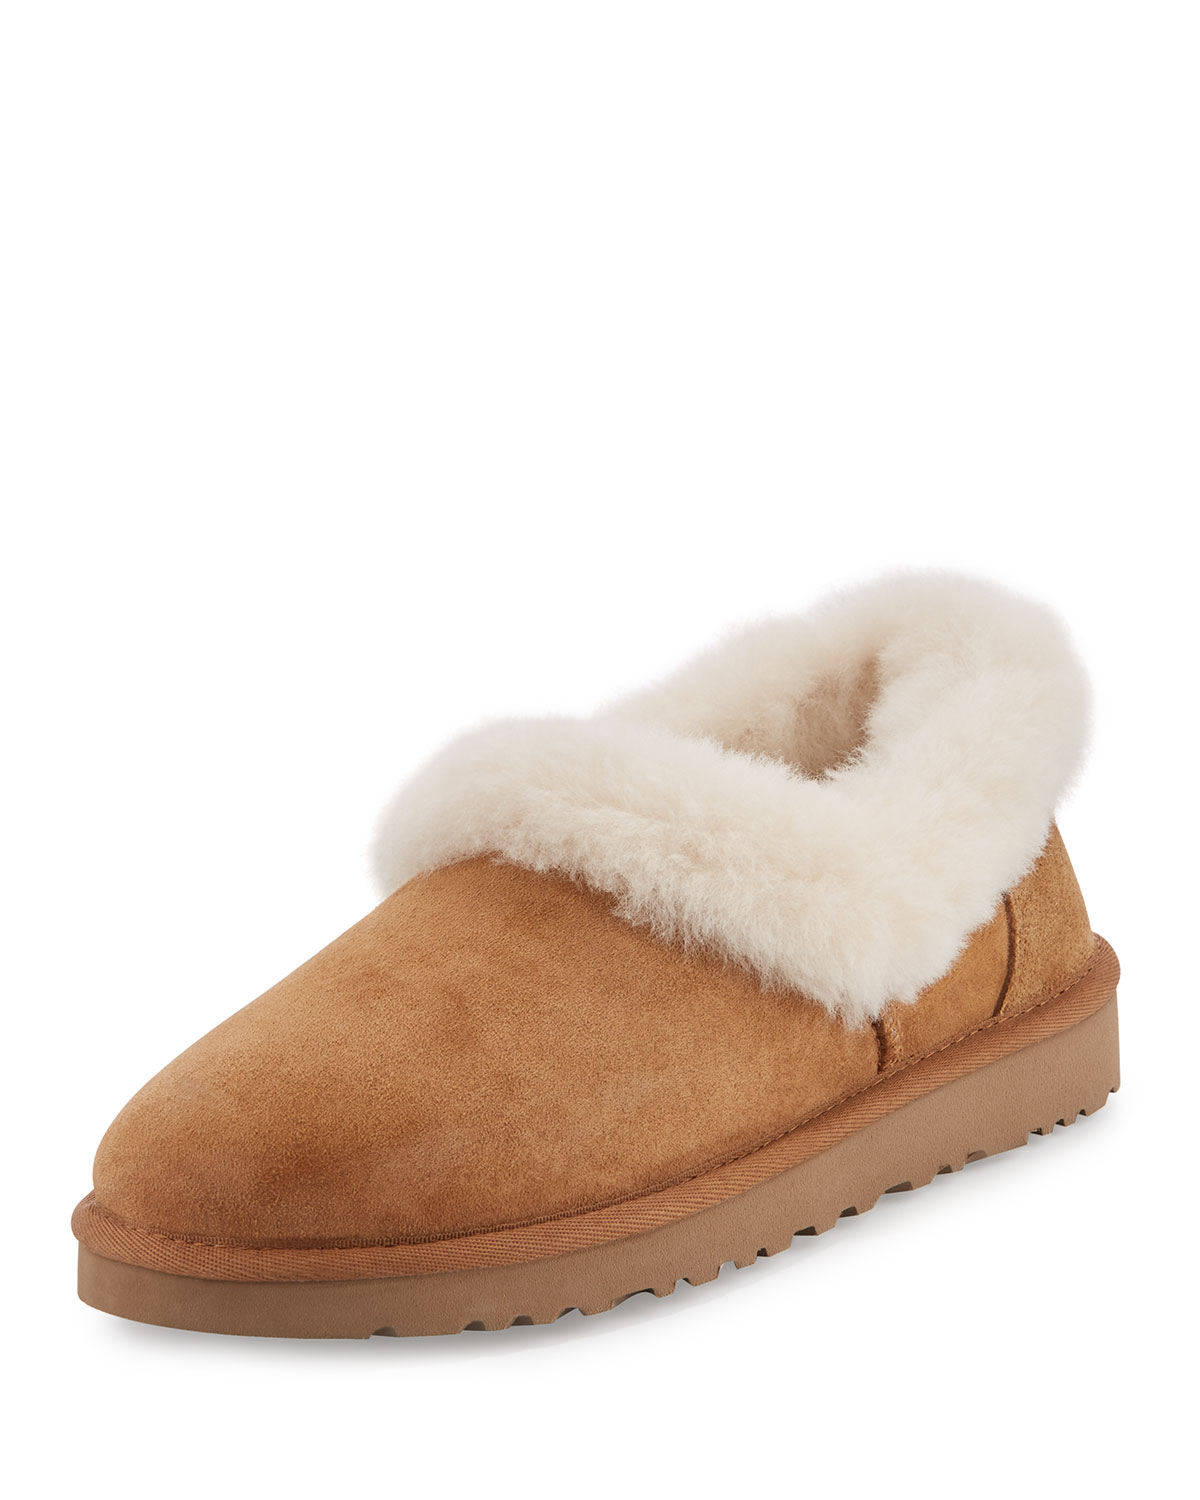 3091d0e2532 UGG Nita Shearling Slipper